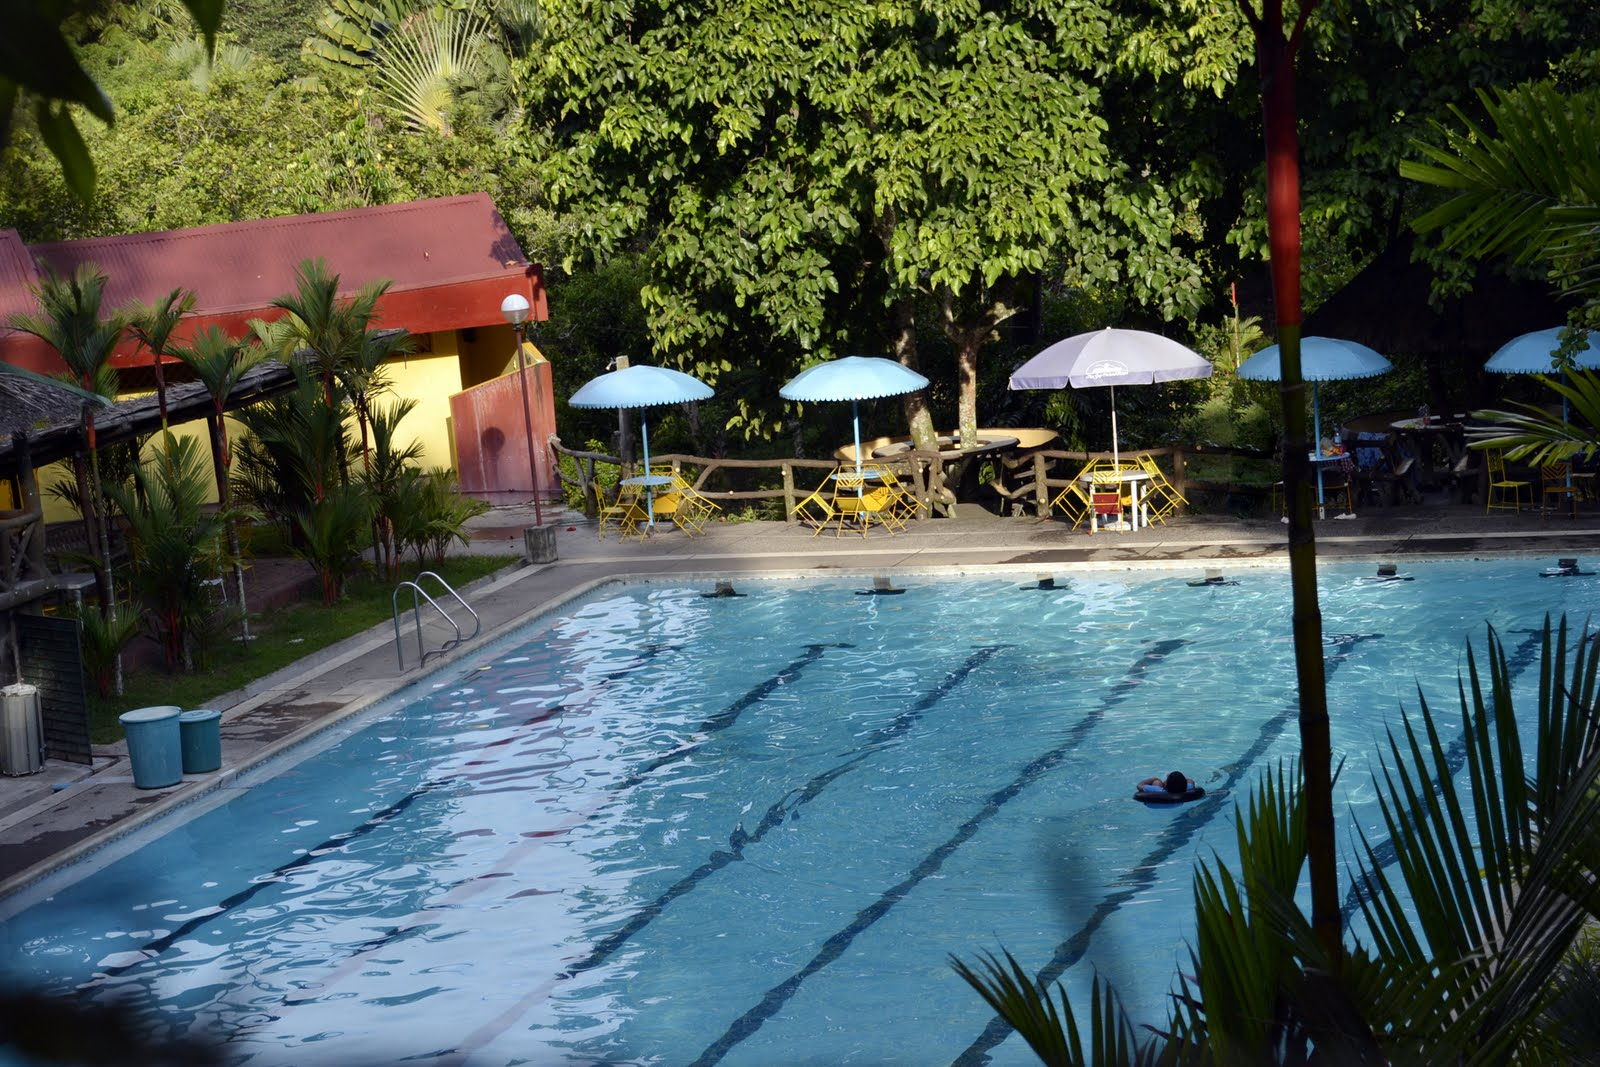 Make it davao gap farming and orchard resort - Apartelle in davao city with swimming pool ...